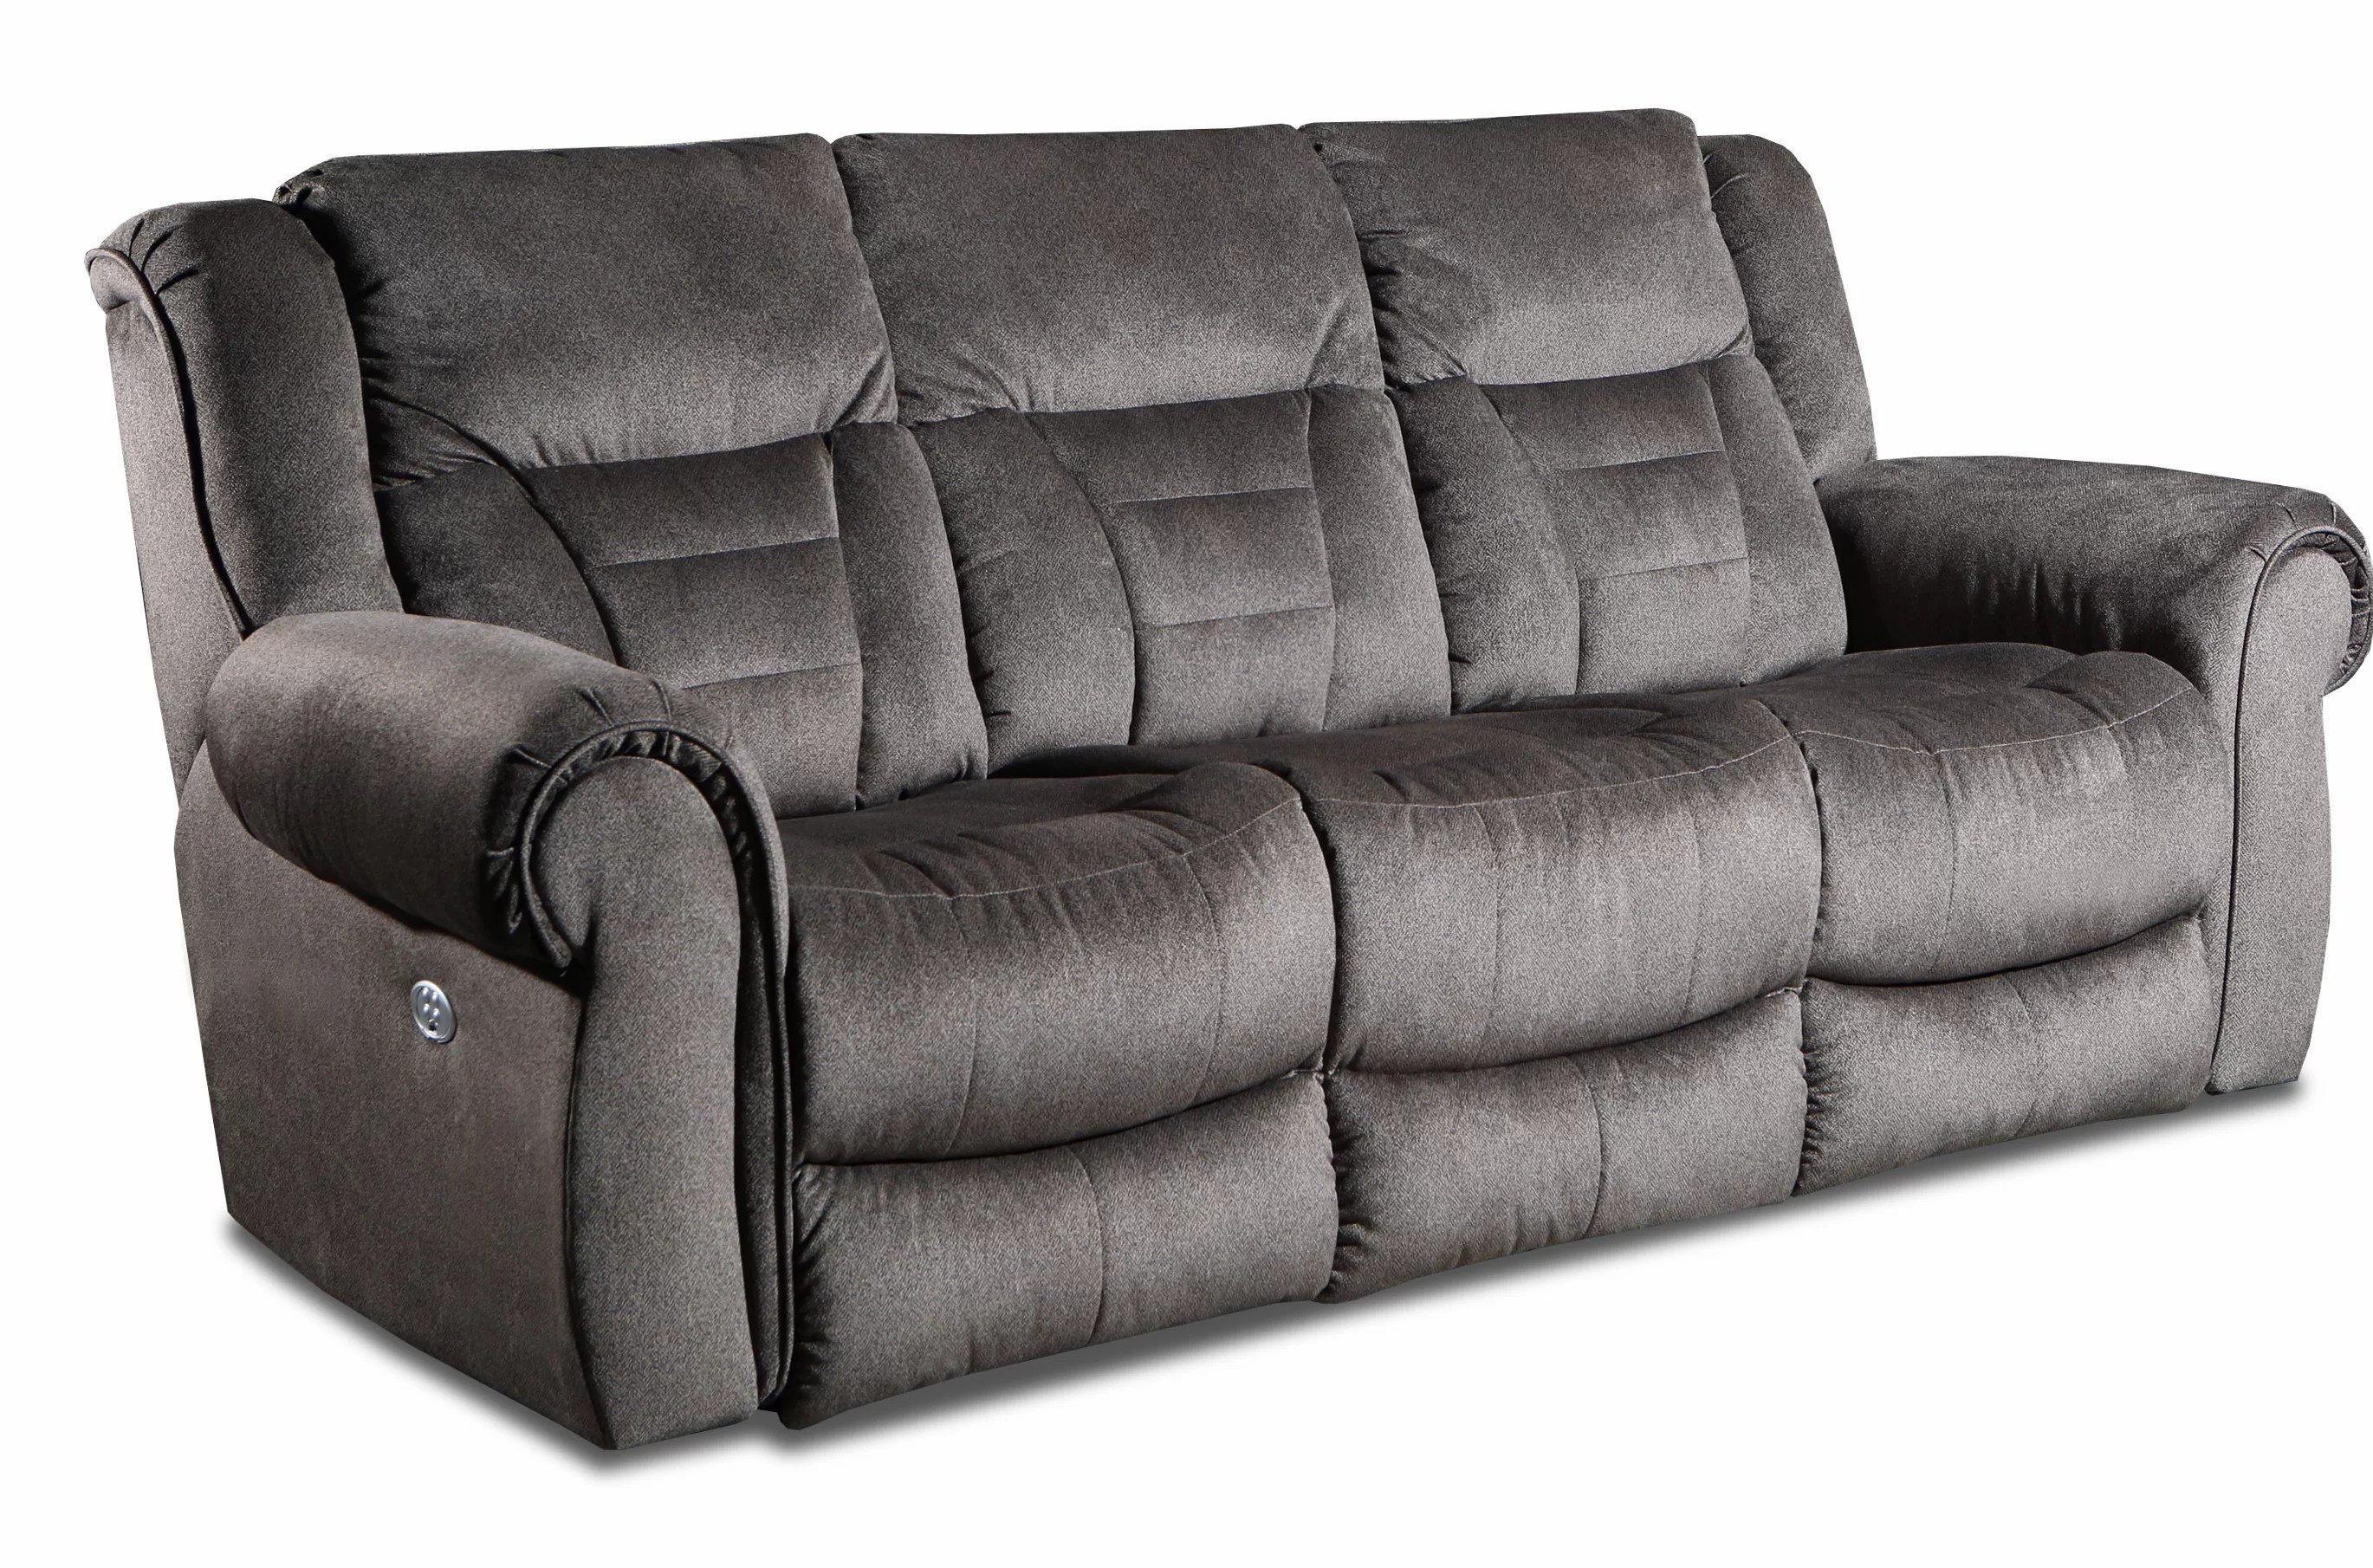 Double Recliner Chair Titan Double Reclining Sofa